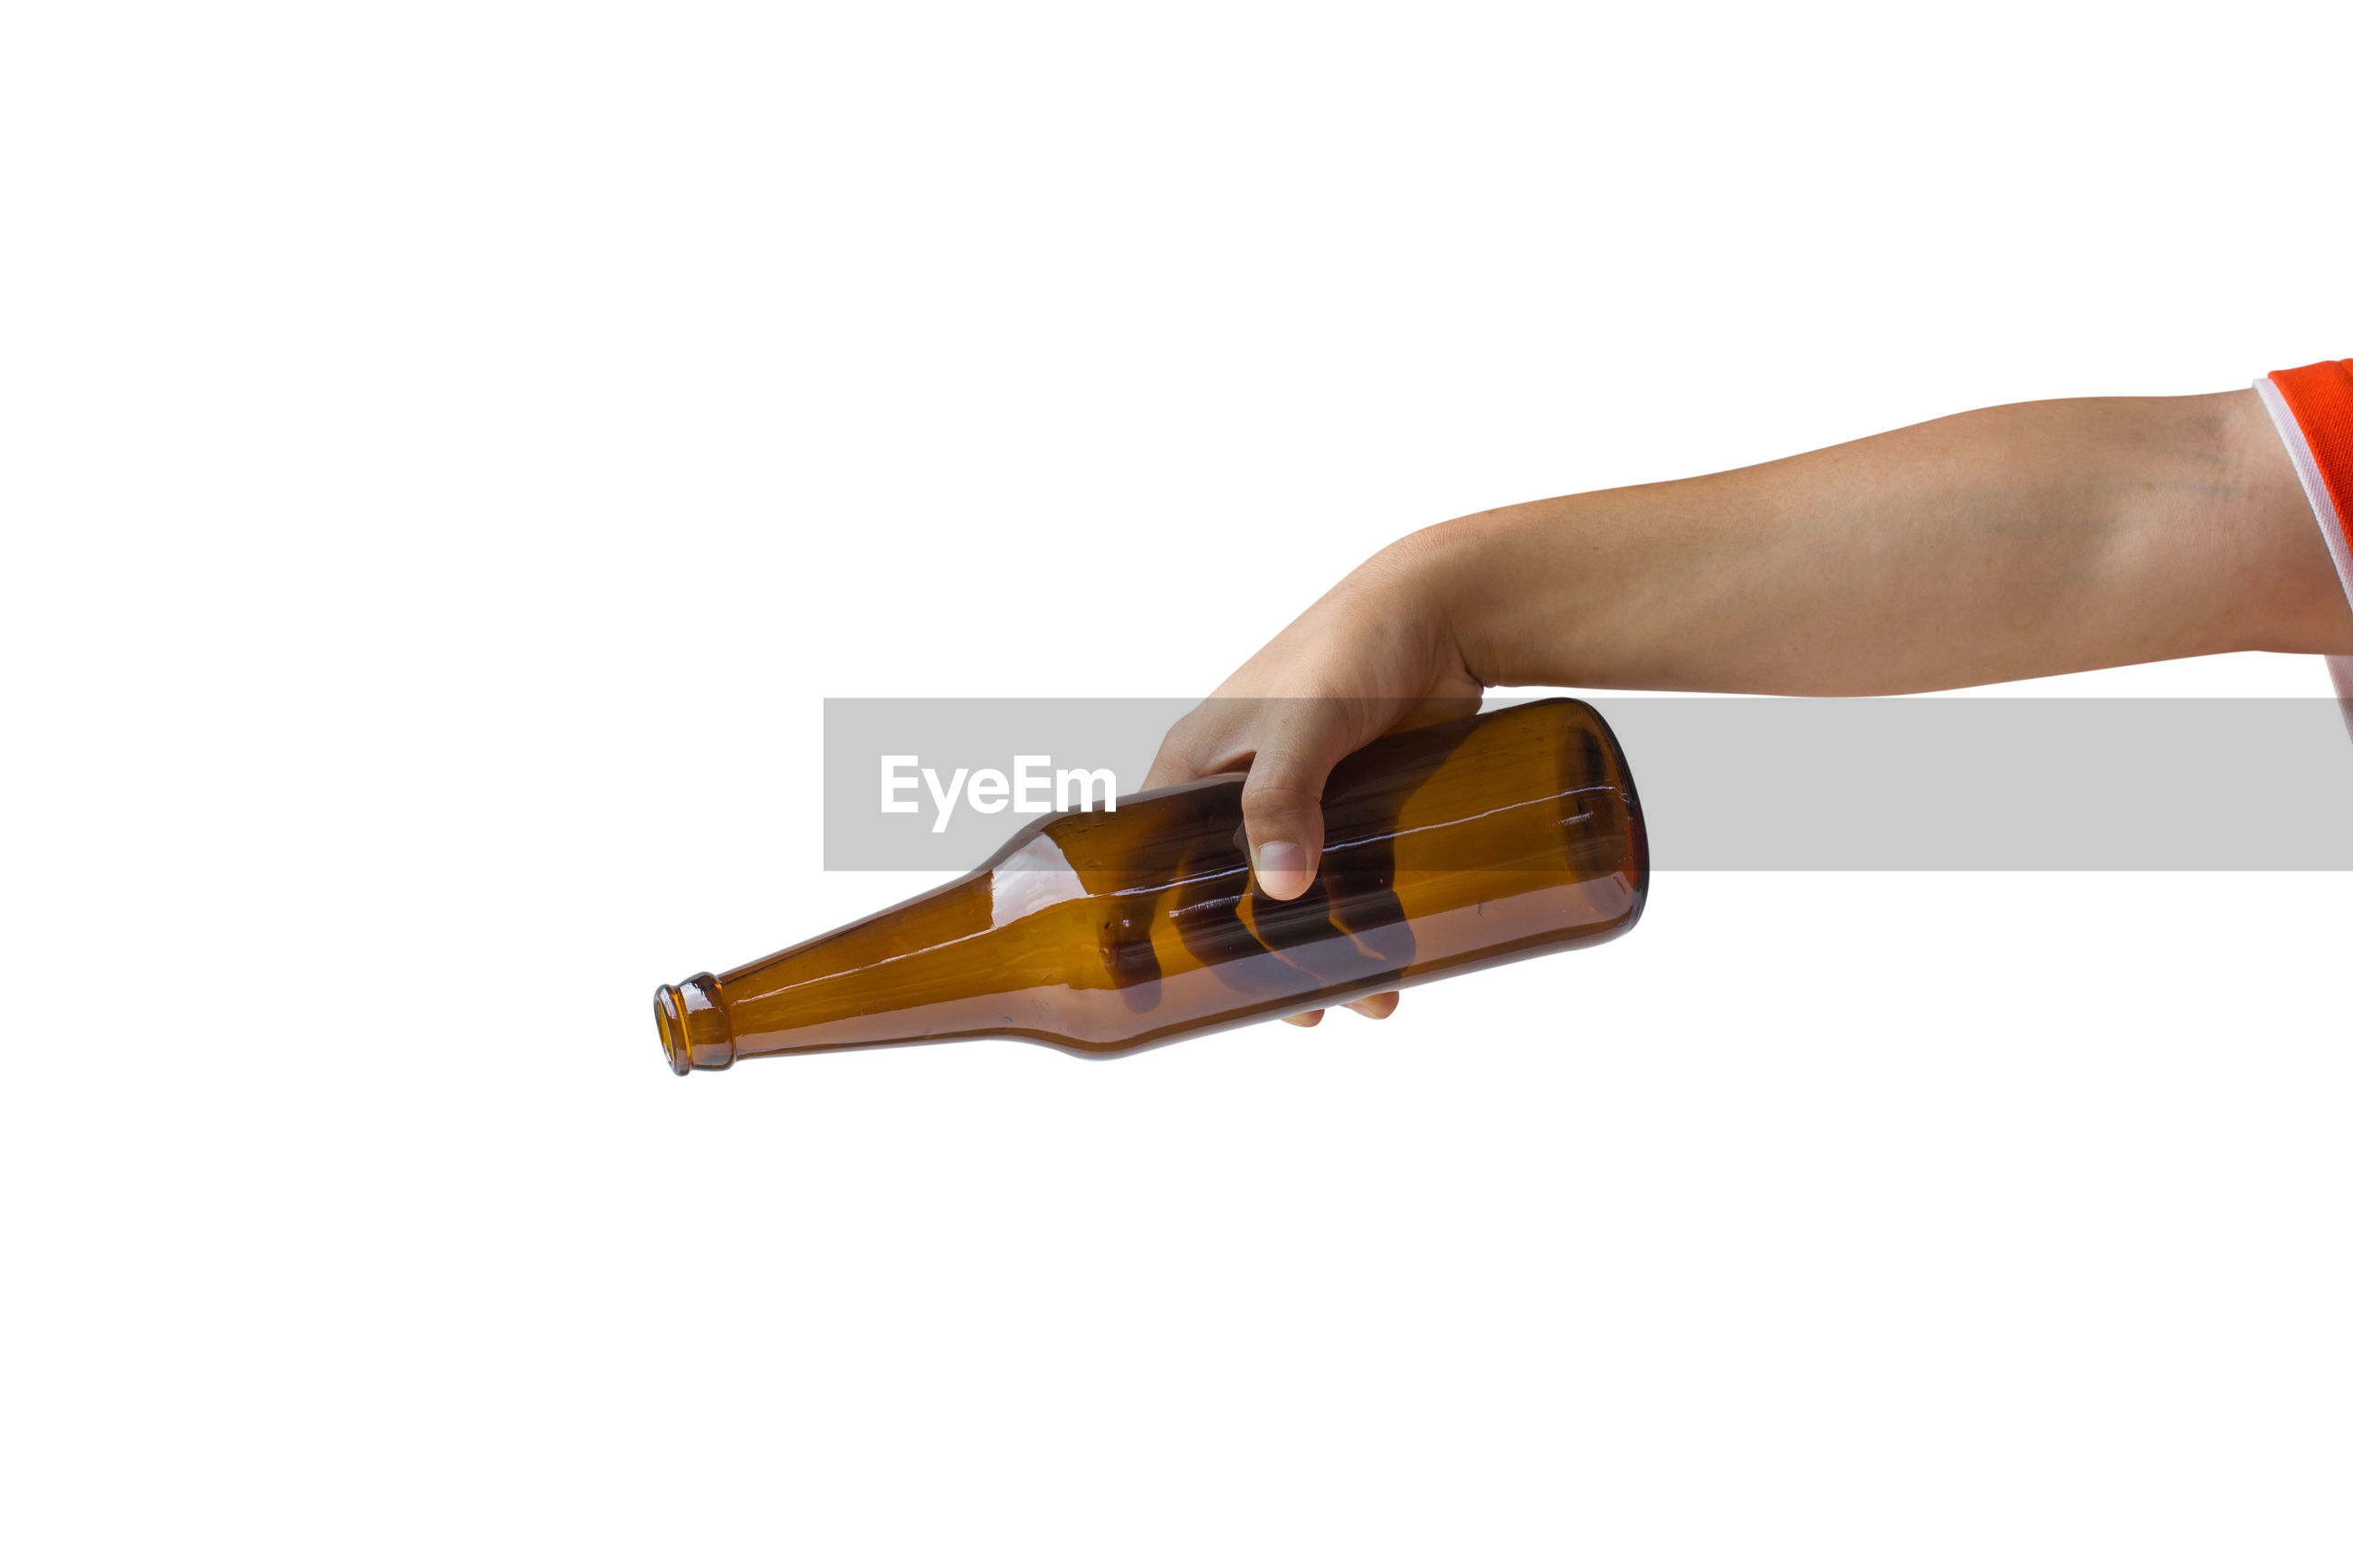 Cropped hand of person holding beer bottle against white background